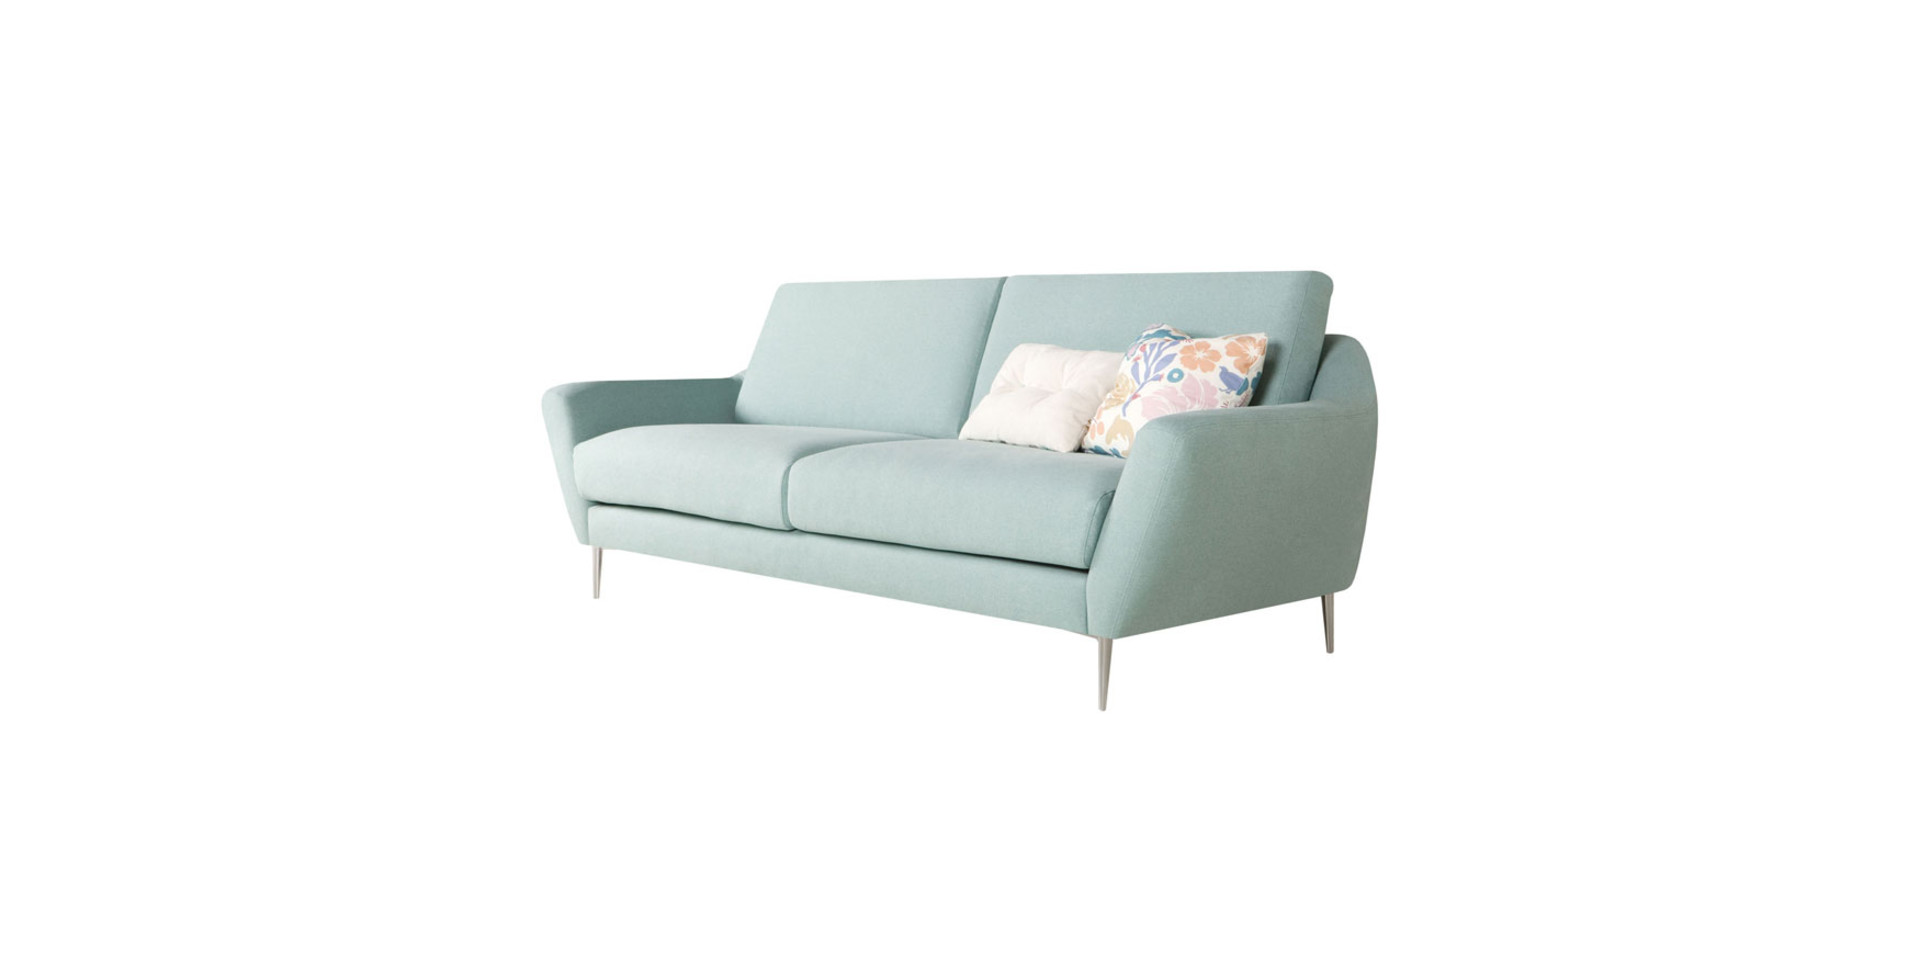 sits-agda-canape-3seater_luis37_turquoise_10